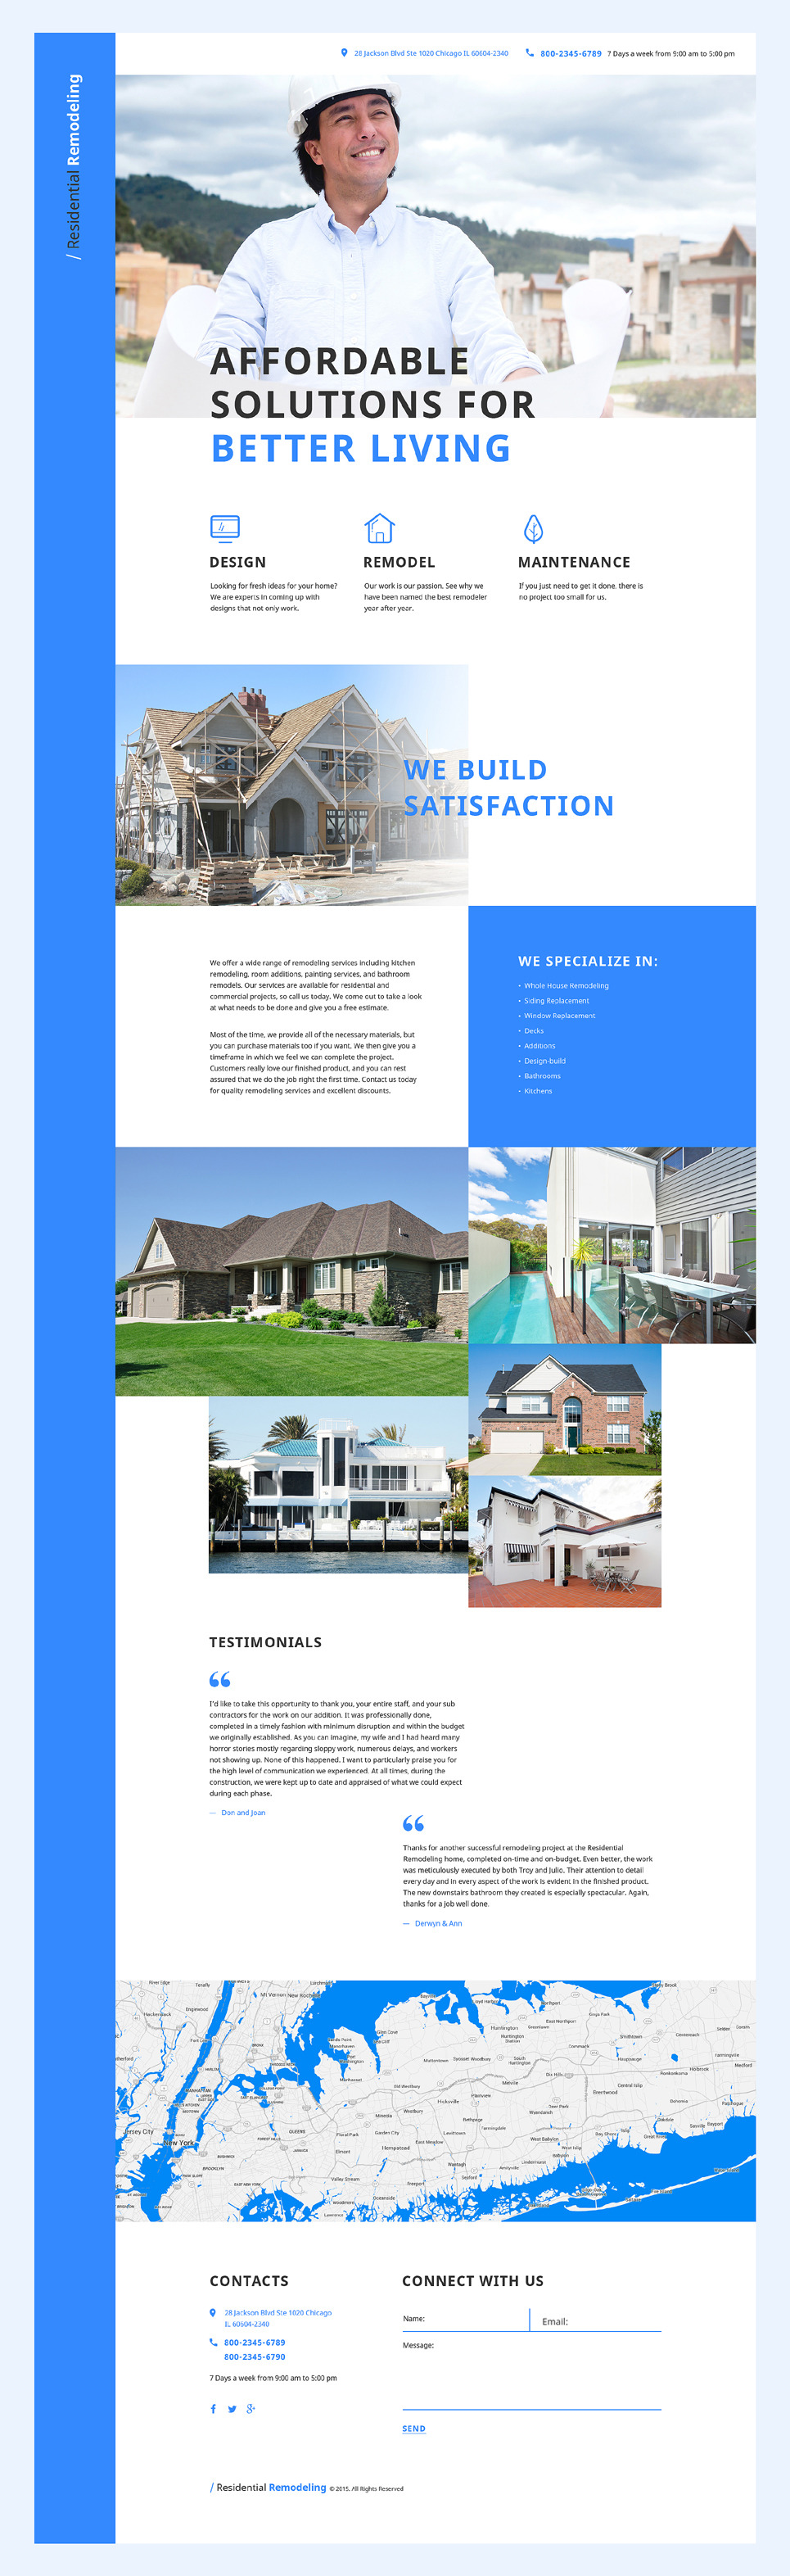 Home Remodeling Landing Page Template New Screenshots BIG